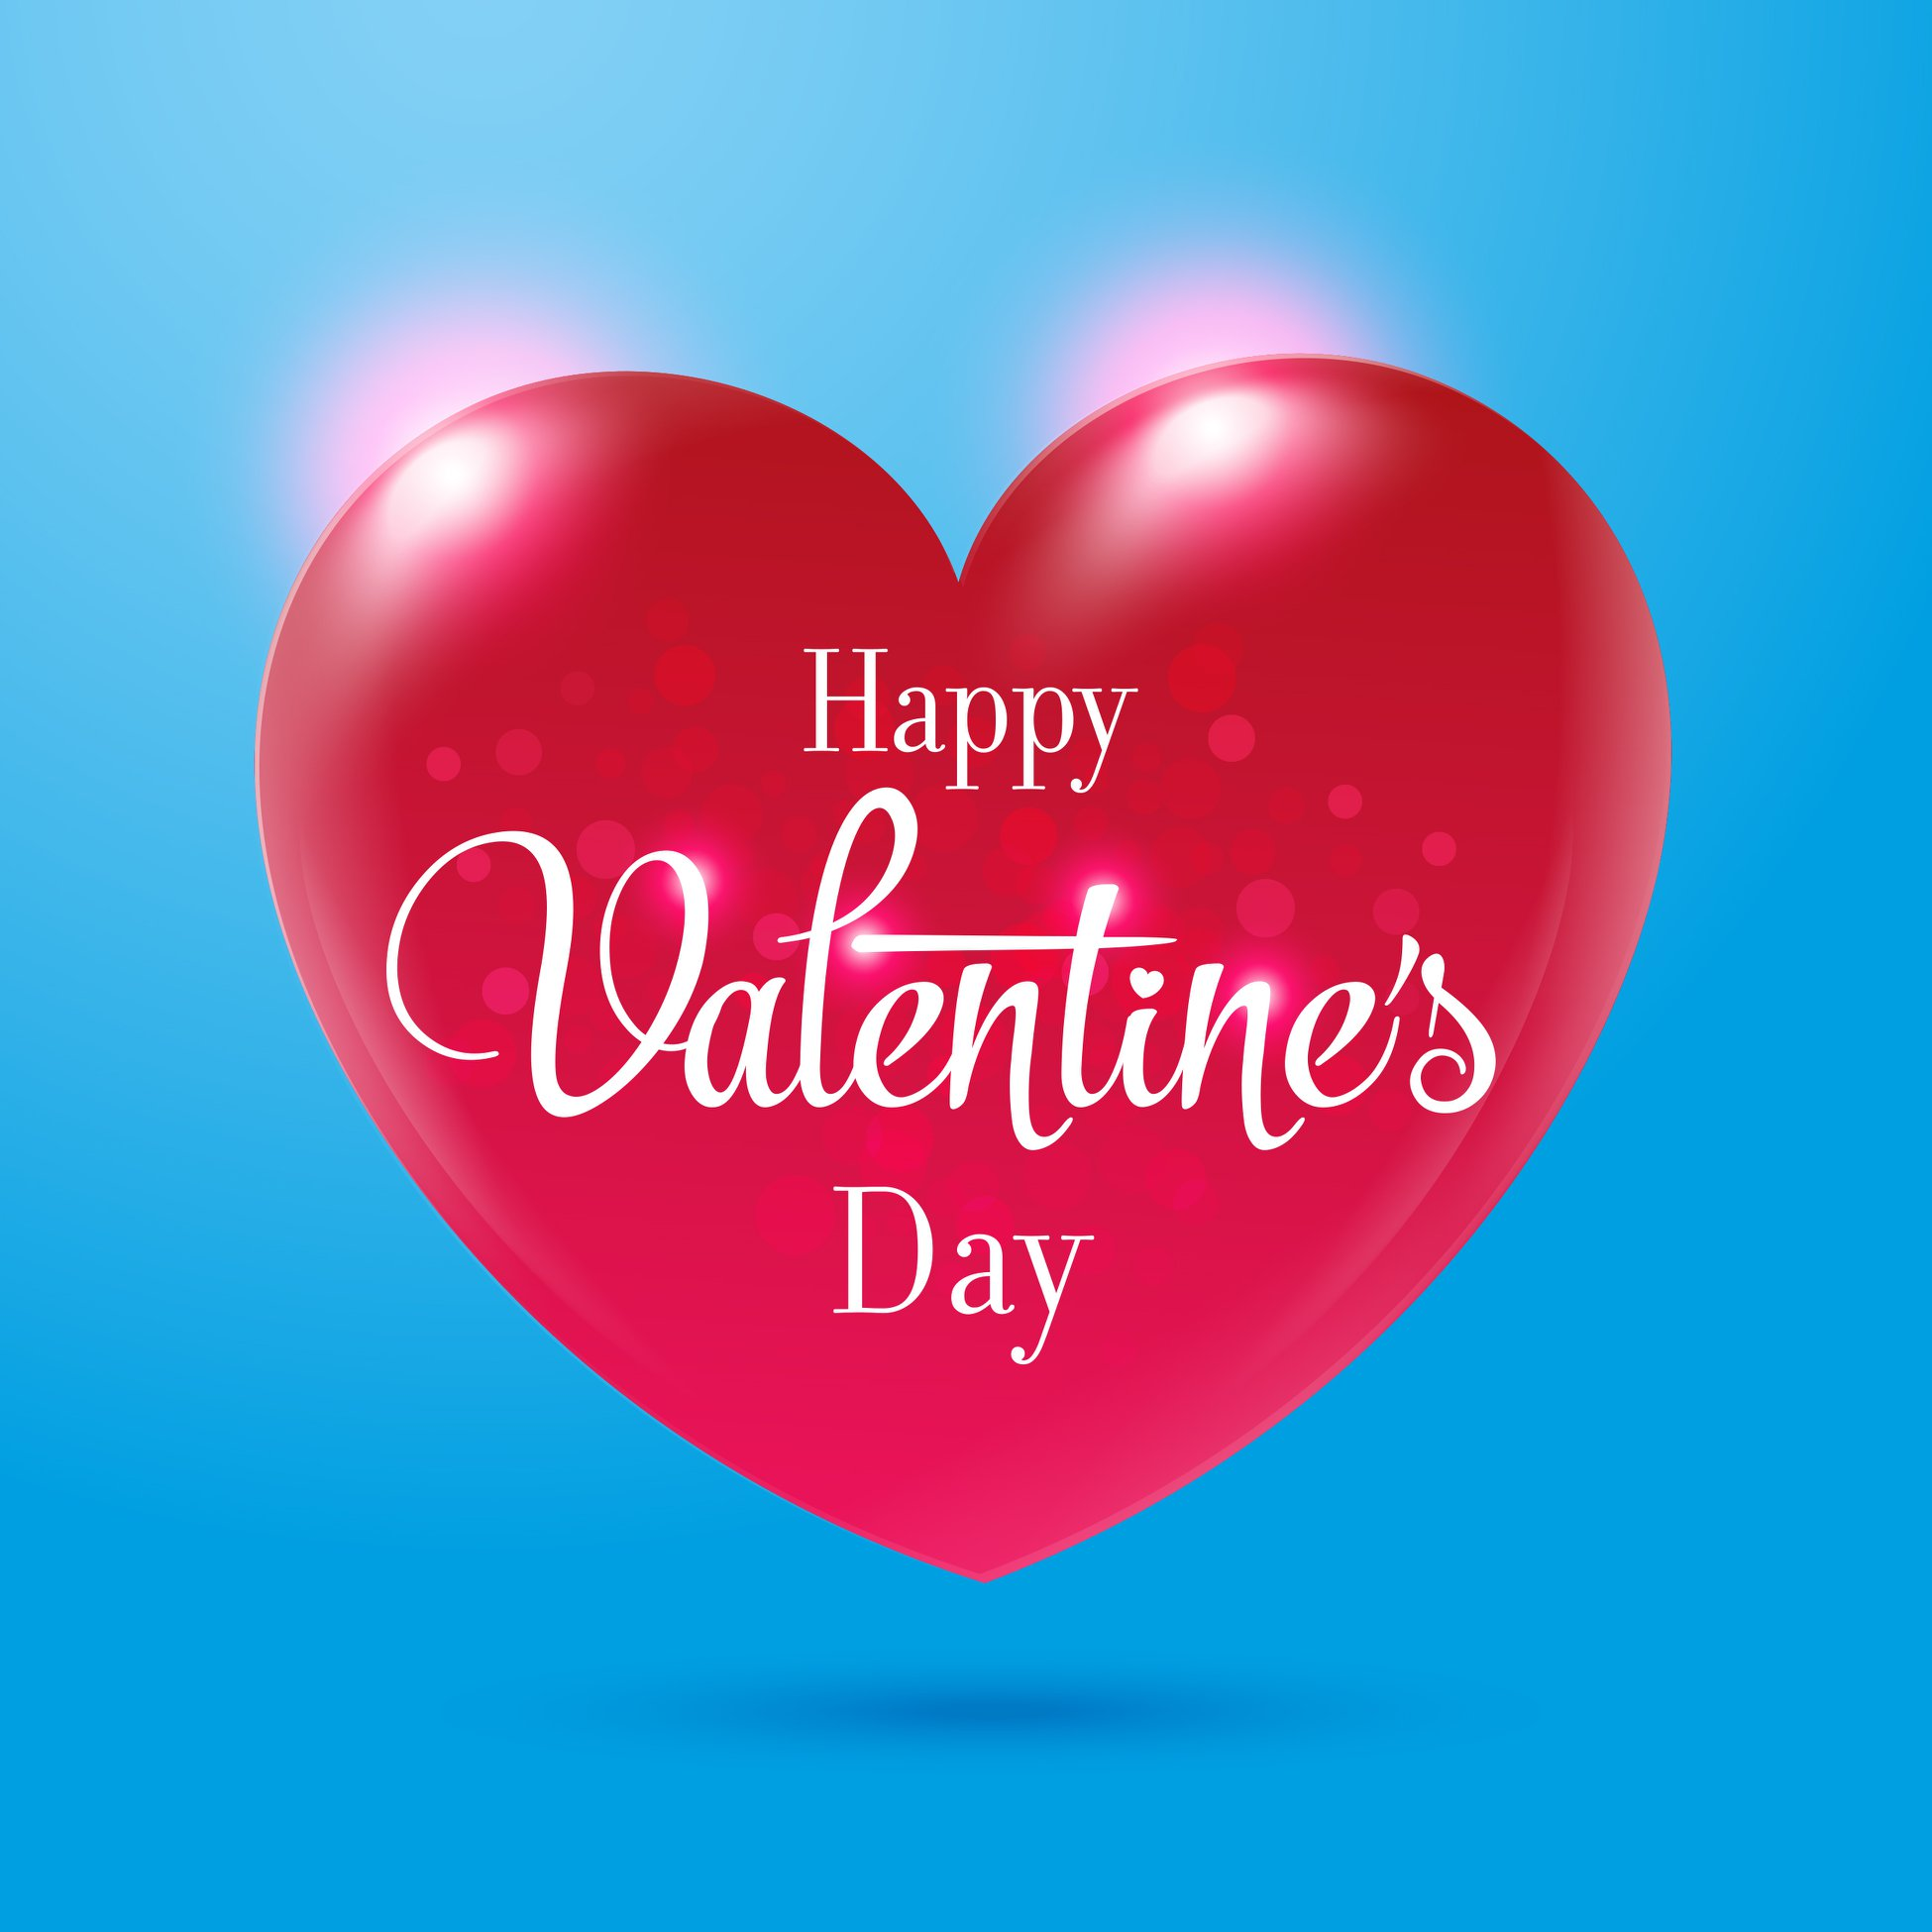 Happy Valentines Day to all those who are